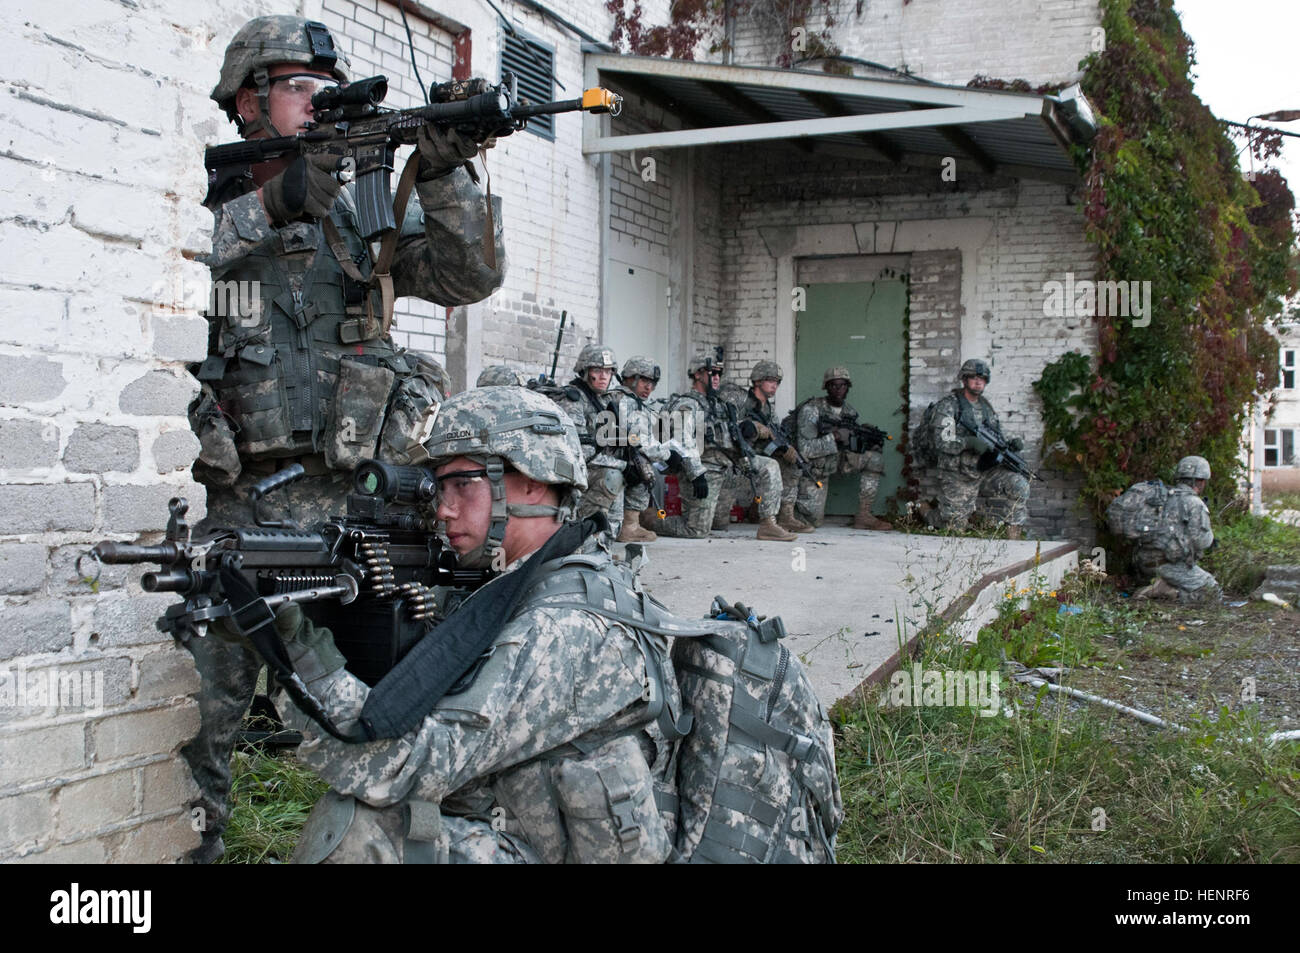 Paratroopers from Company B, 2nd Battalion, 503rd Infantry Regiment,173rd Airborne Brigade pull security at an abandoned Stock Photo